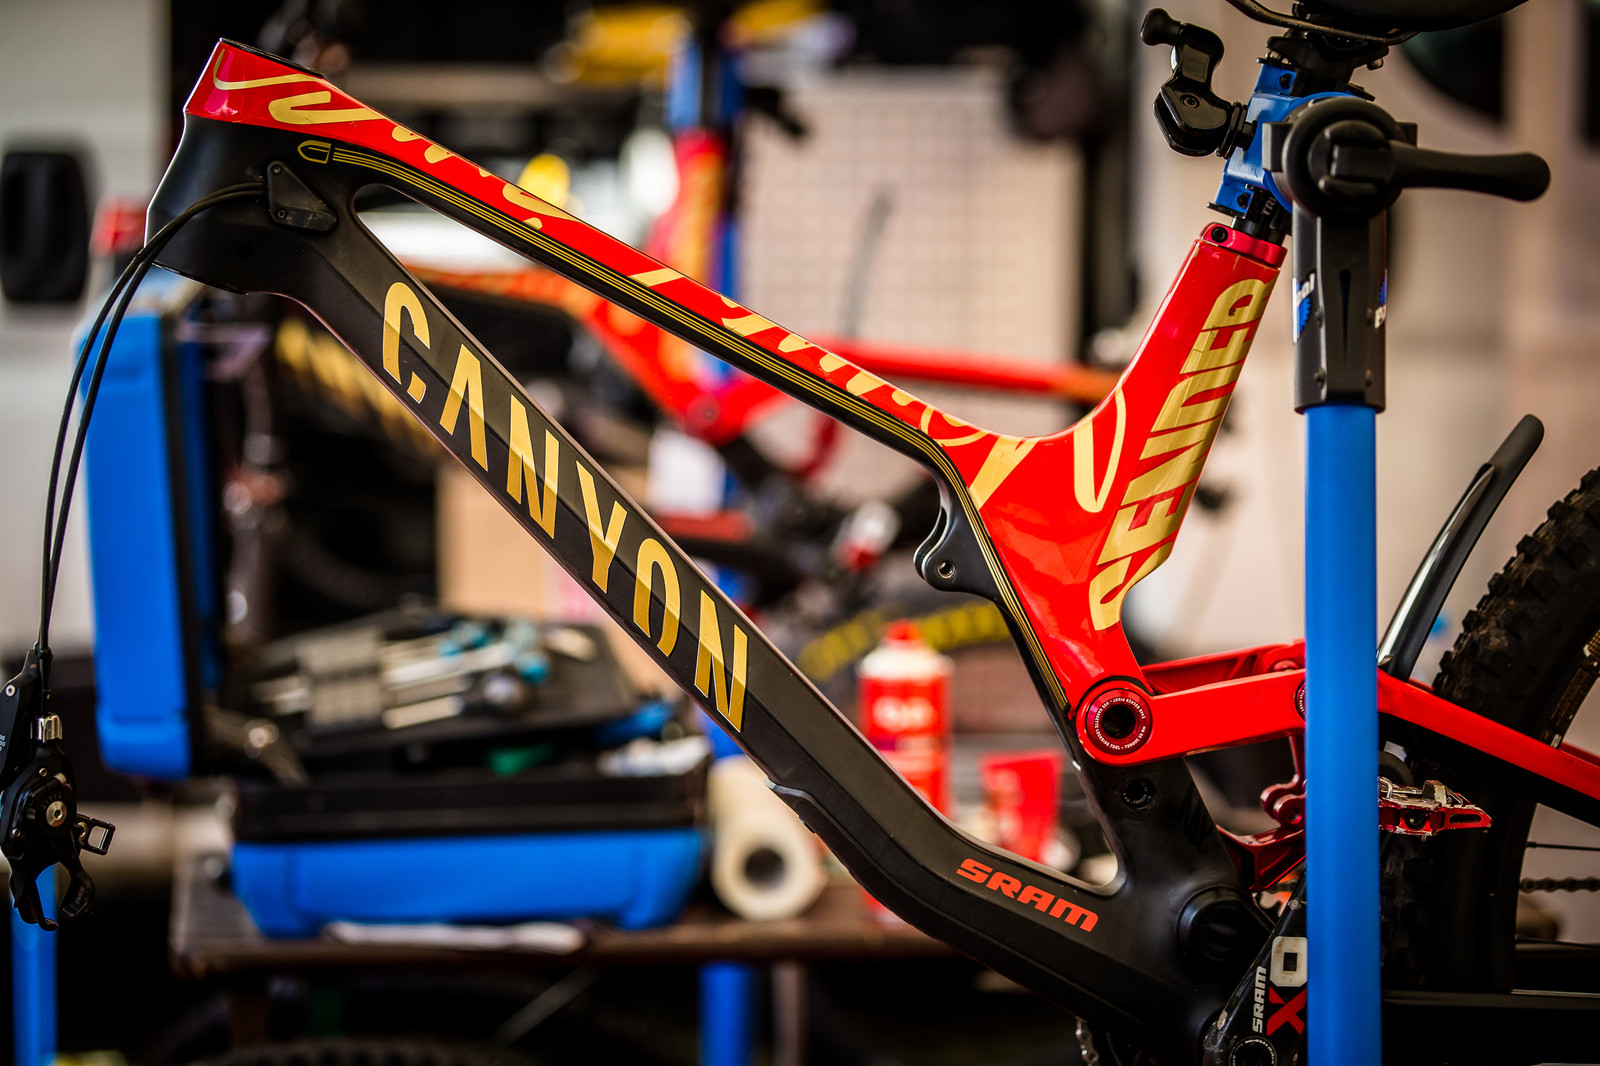 World Champs Bikes in the House! - PIT BITS - Val di Sole World Cup Downhill - Mountain Biking Pictures - Vital MTB